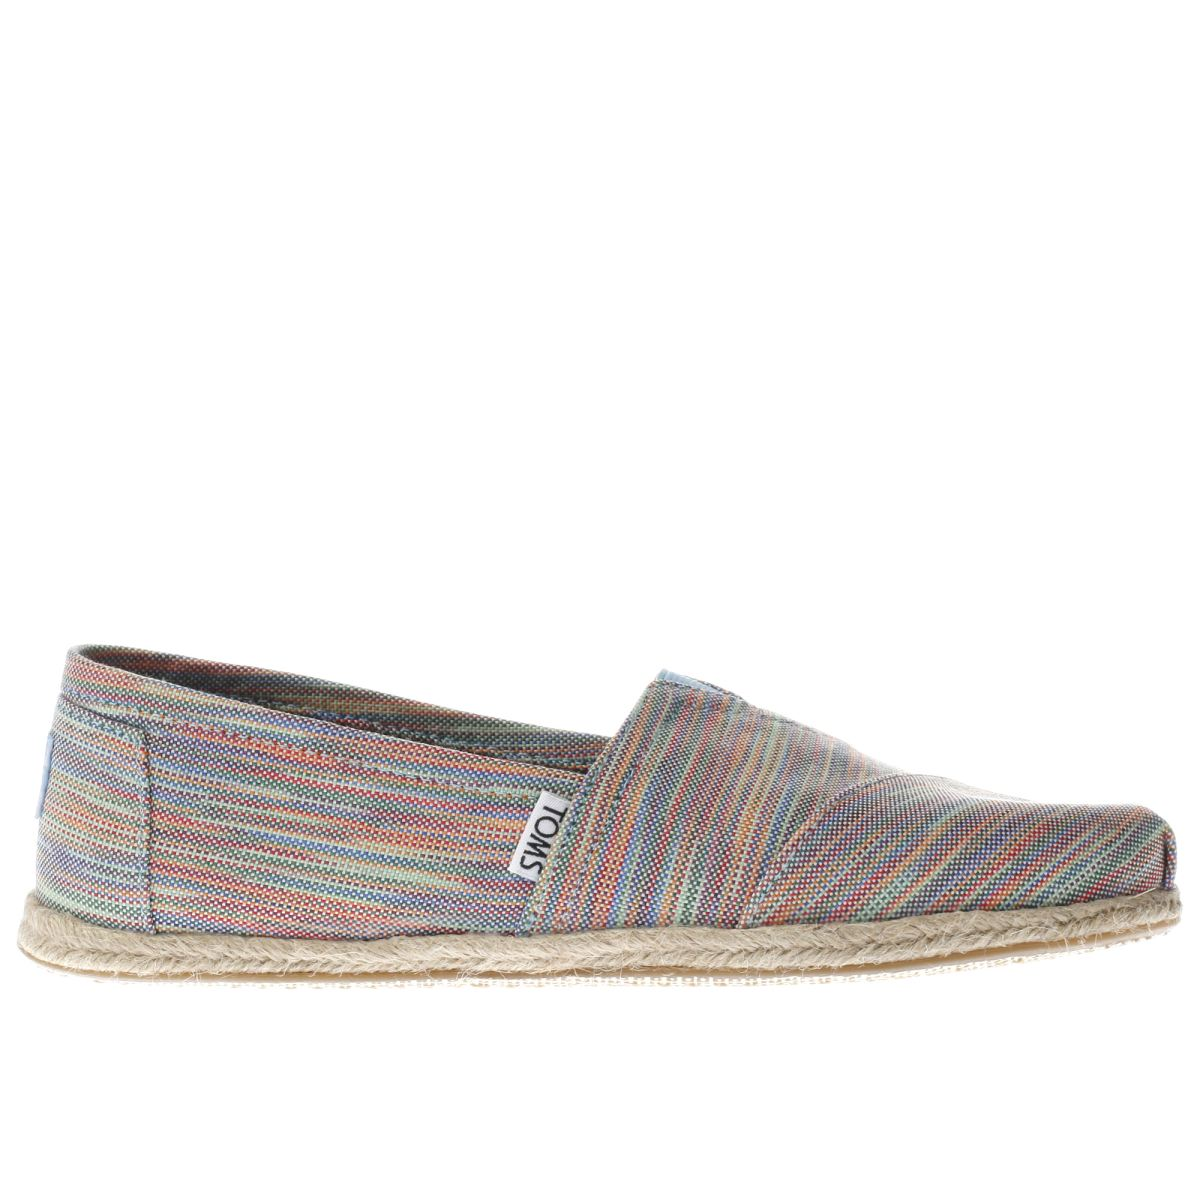 toms pink & green alpargata space dye flat shoes